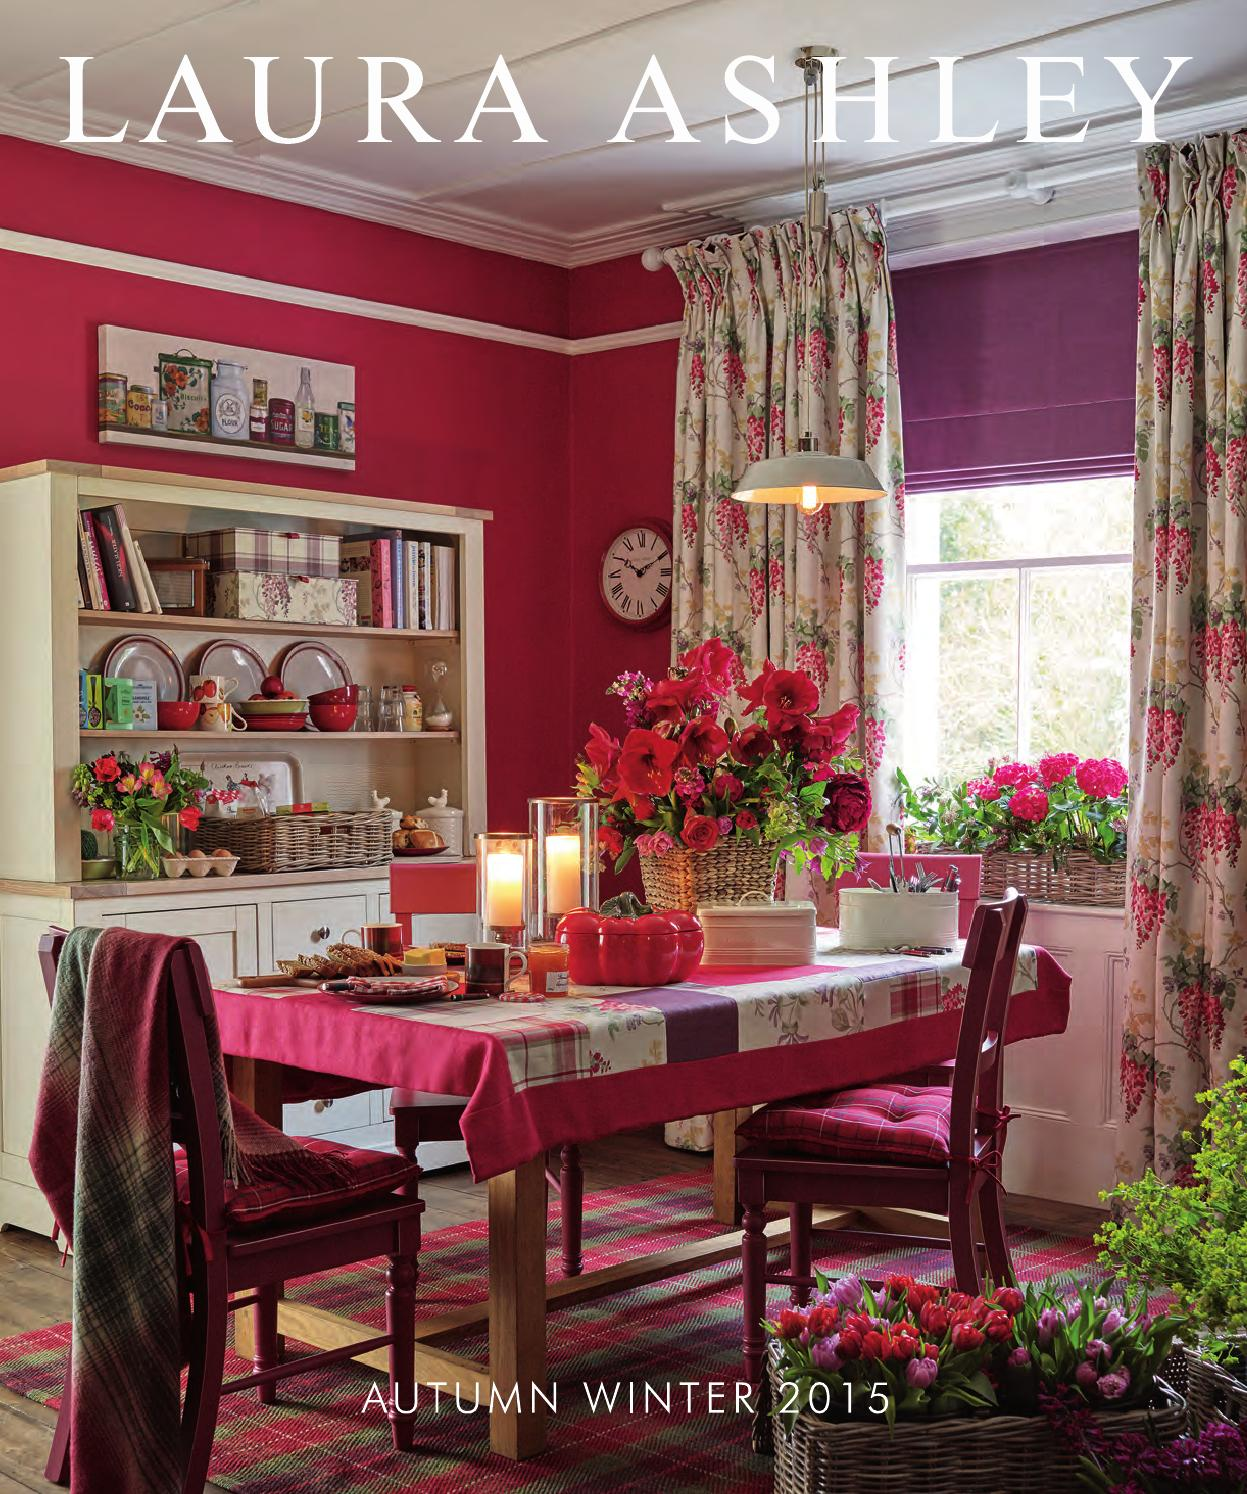 Laura ashley autumn winter 2015 by stanislav petkanov - Catalogo laura ashley ...